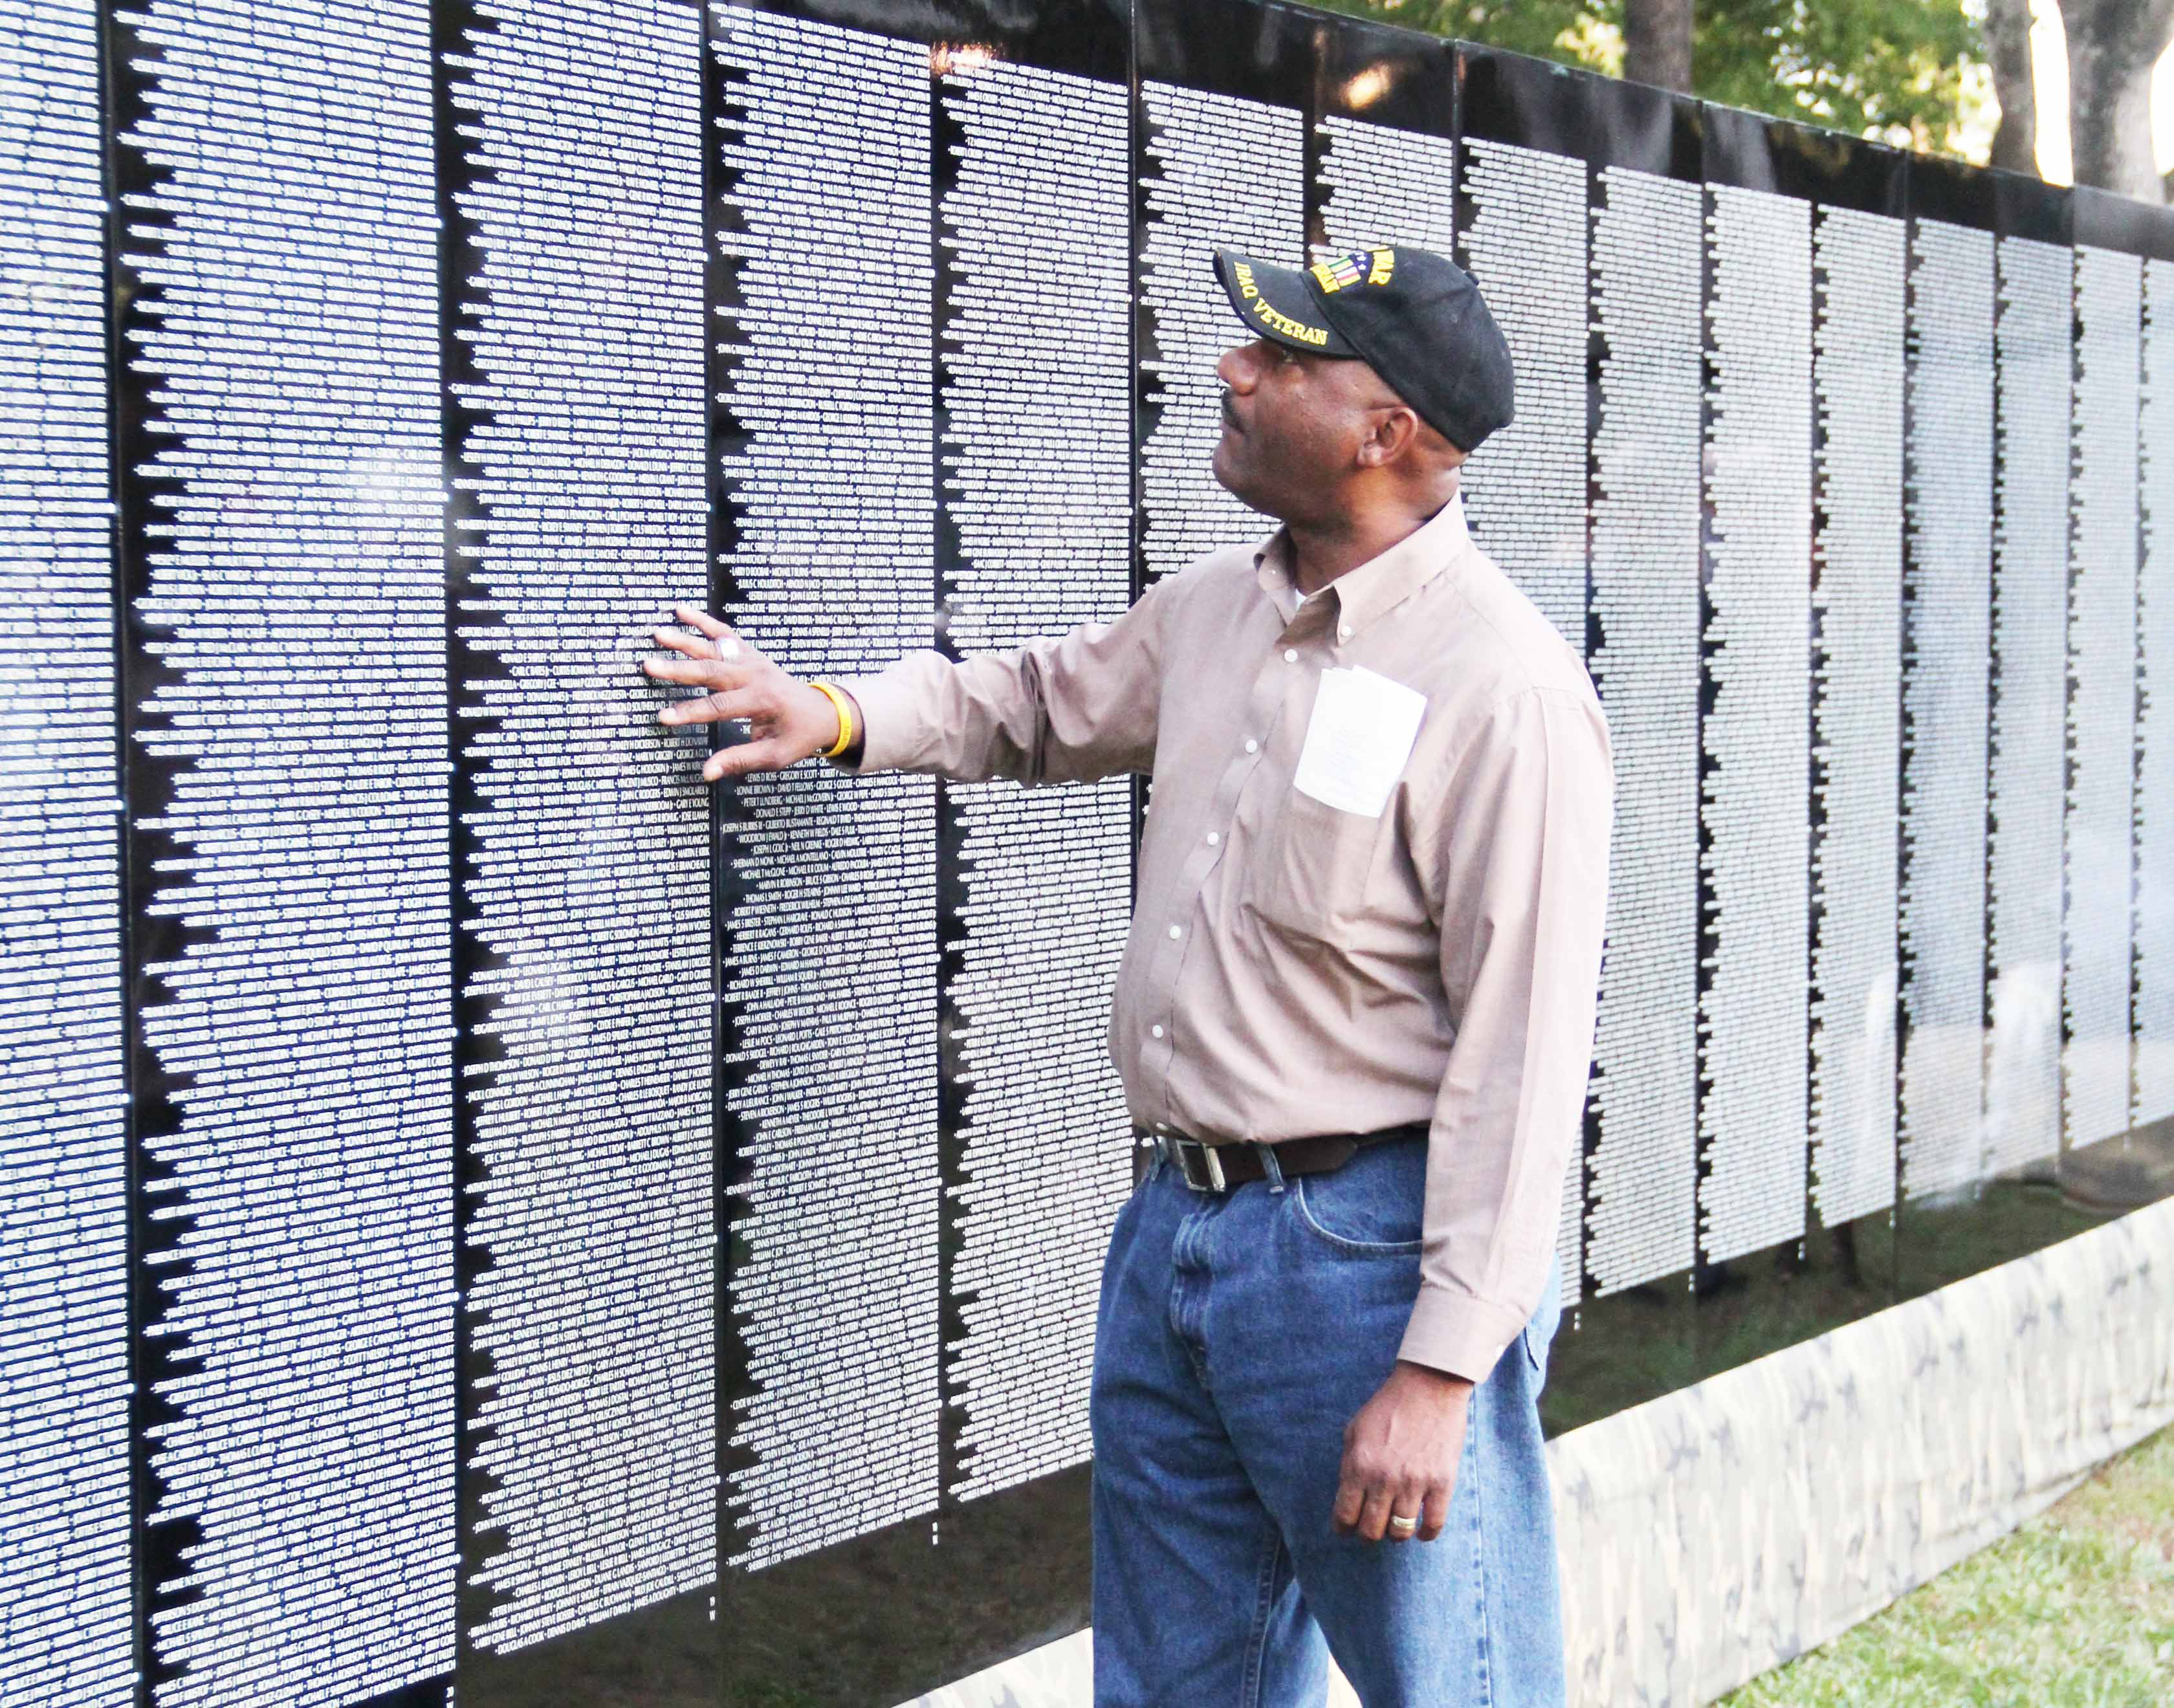 Veterans of the Vietnam War visit the wall throughout the week, searching for names of fallen comrades and loved ones.